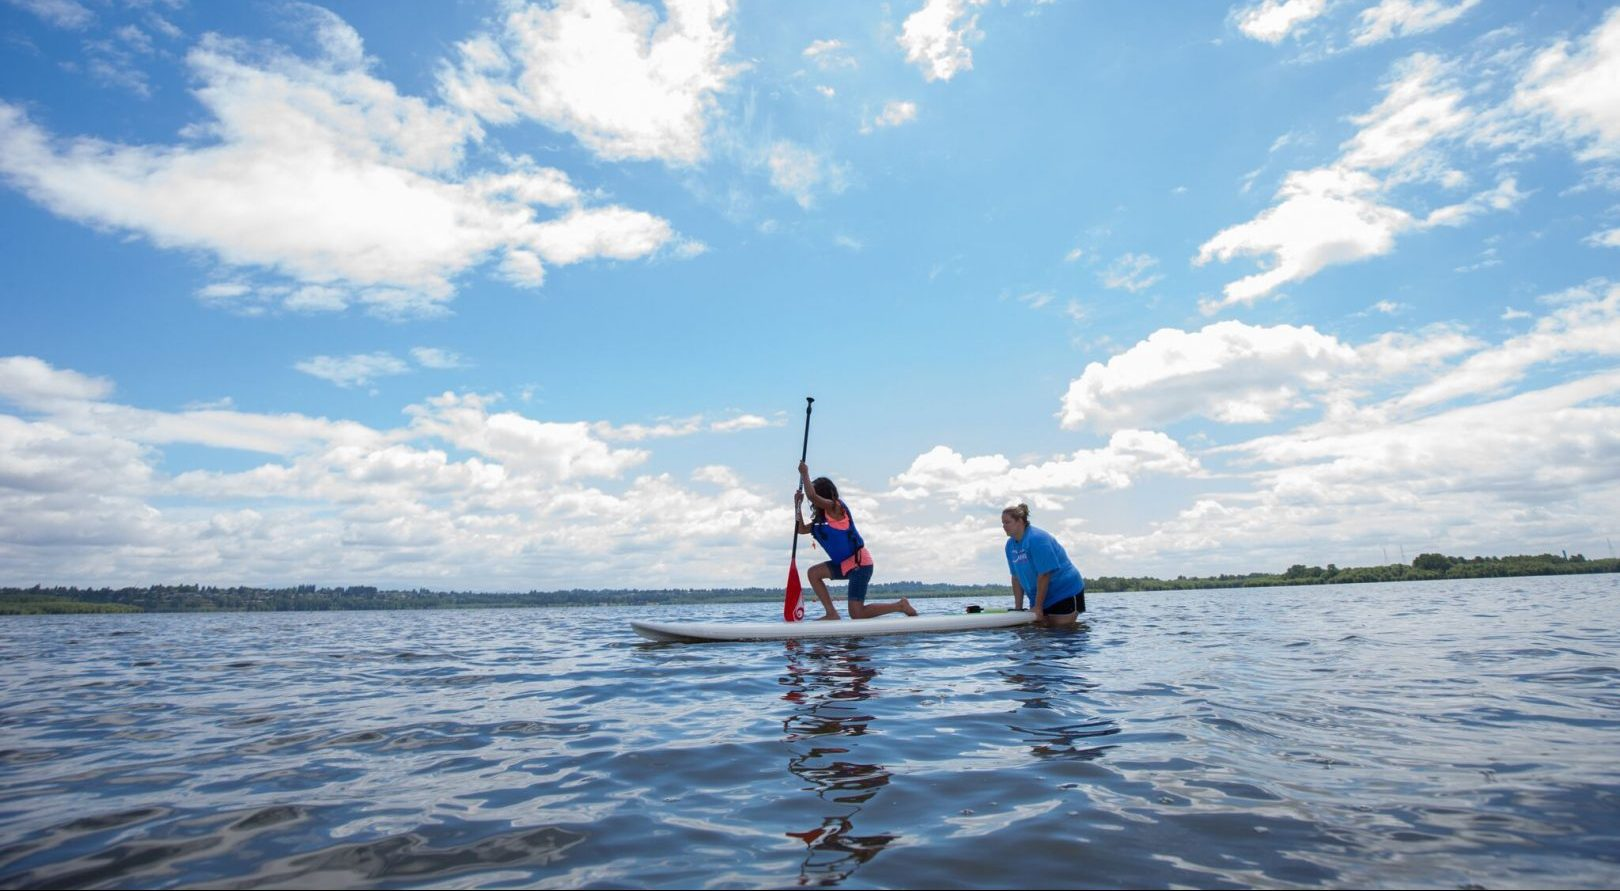 stacey standing in a body of water helping a student on a paddle board